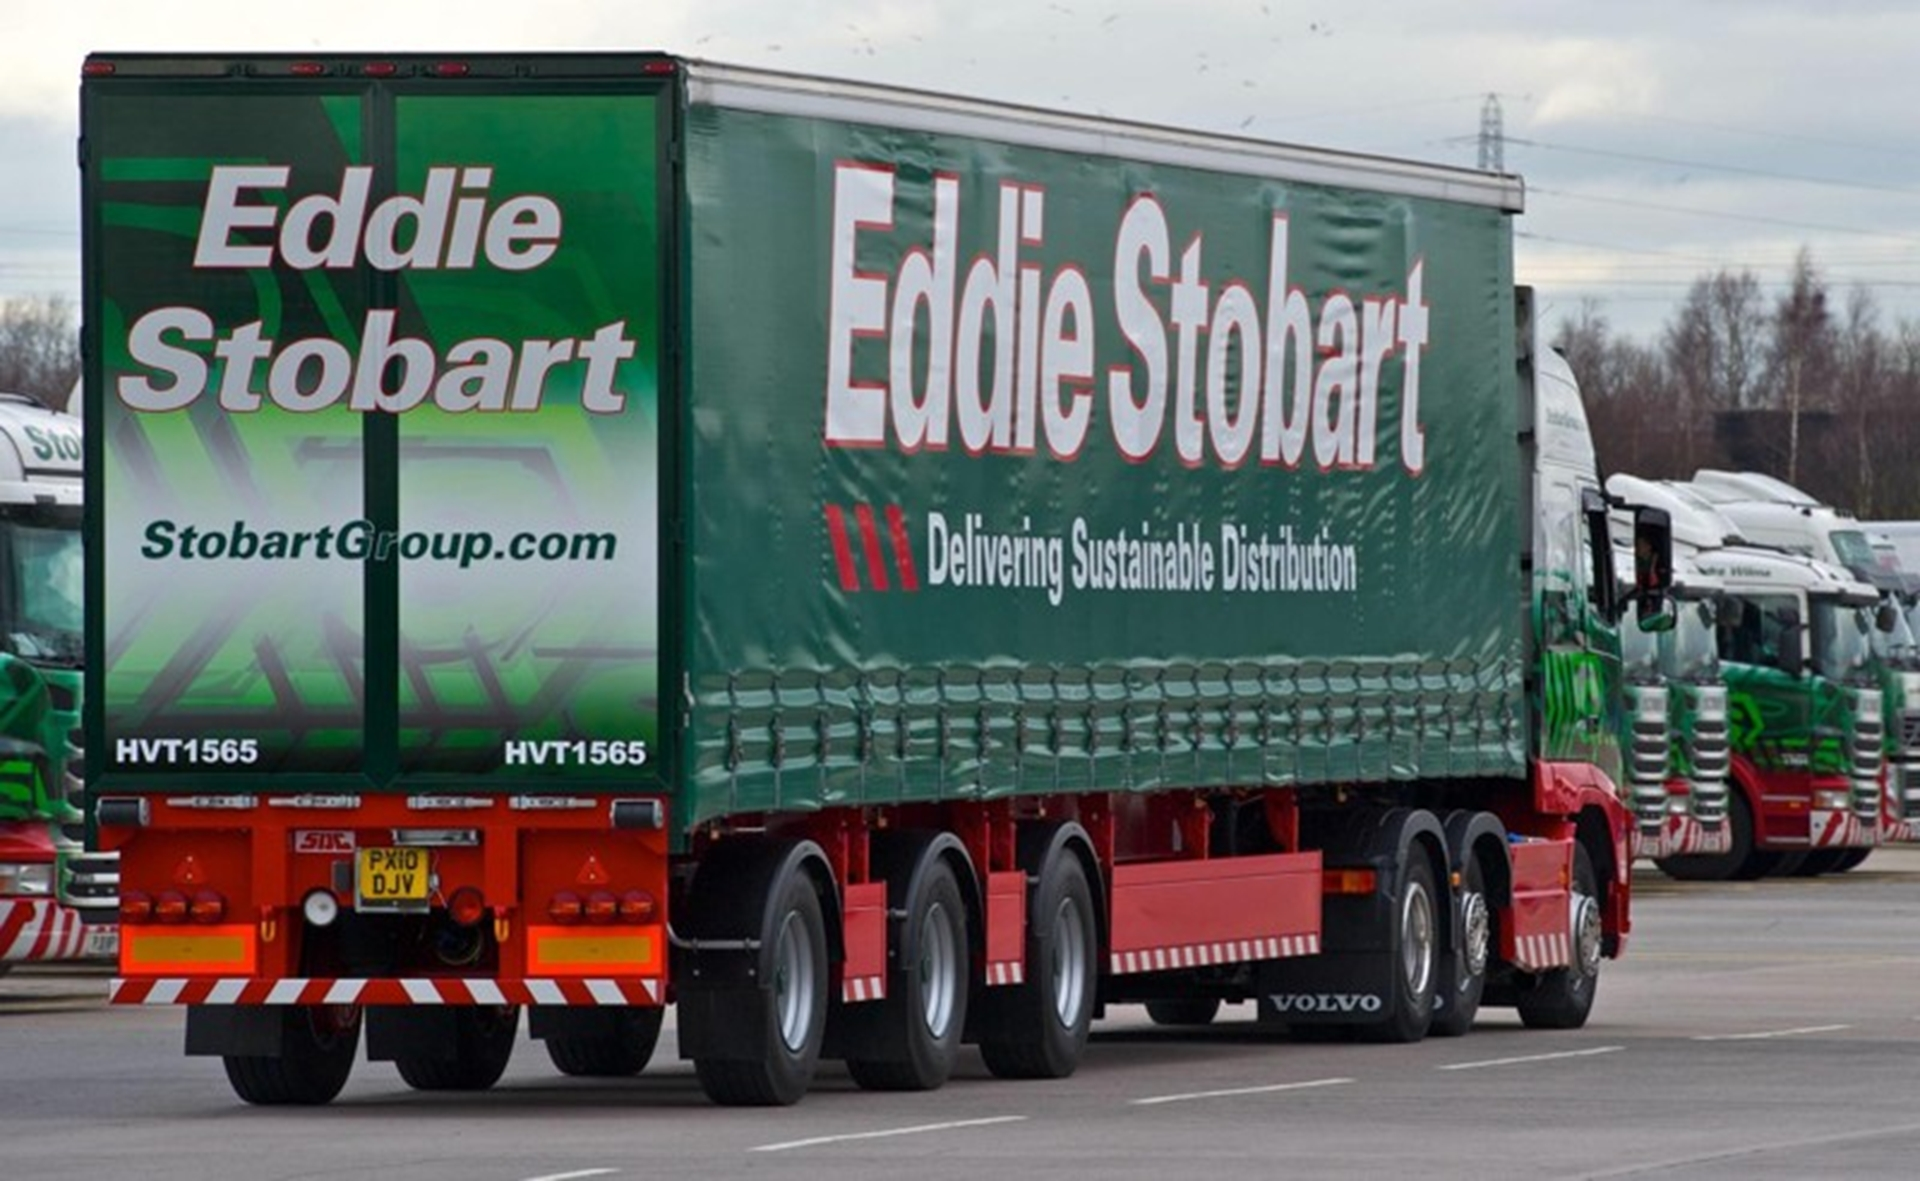 Eddie Stobart Leads Innovation With First Delivery Using